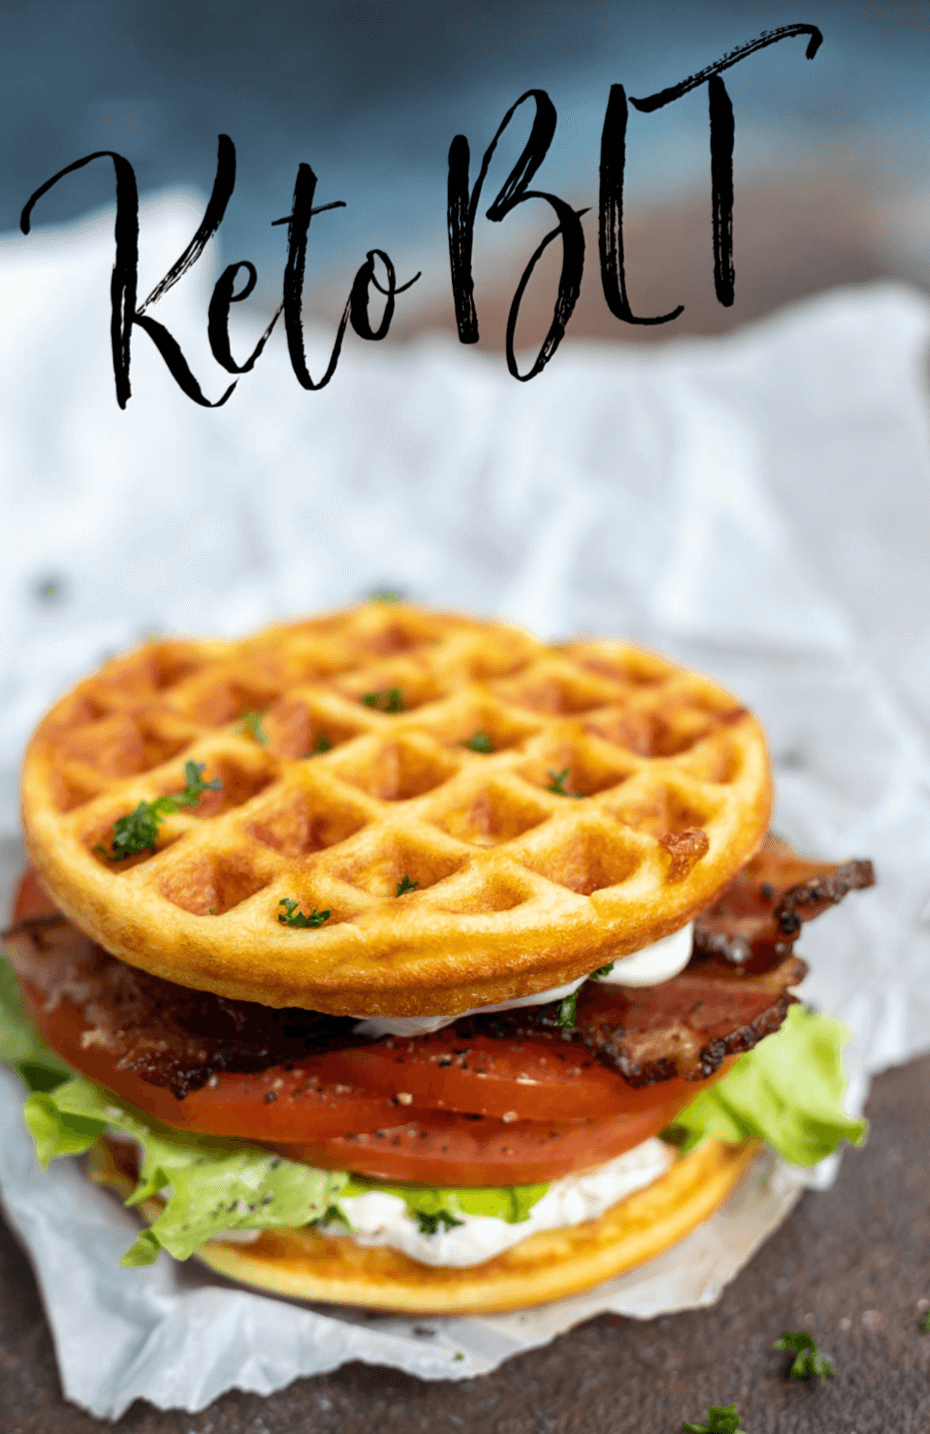 keto bacon lettuce tomato sandwich on Chaffles